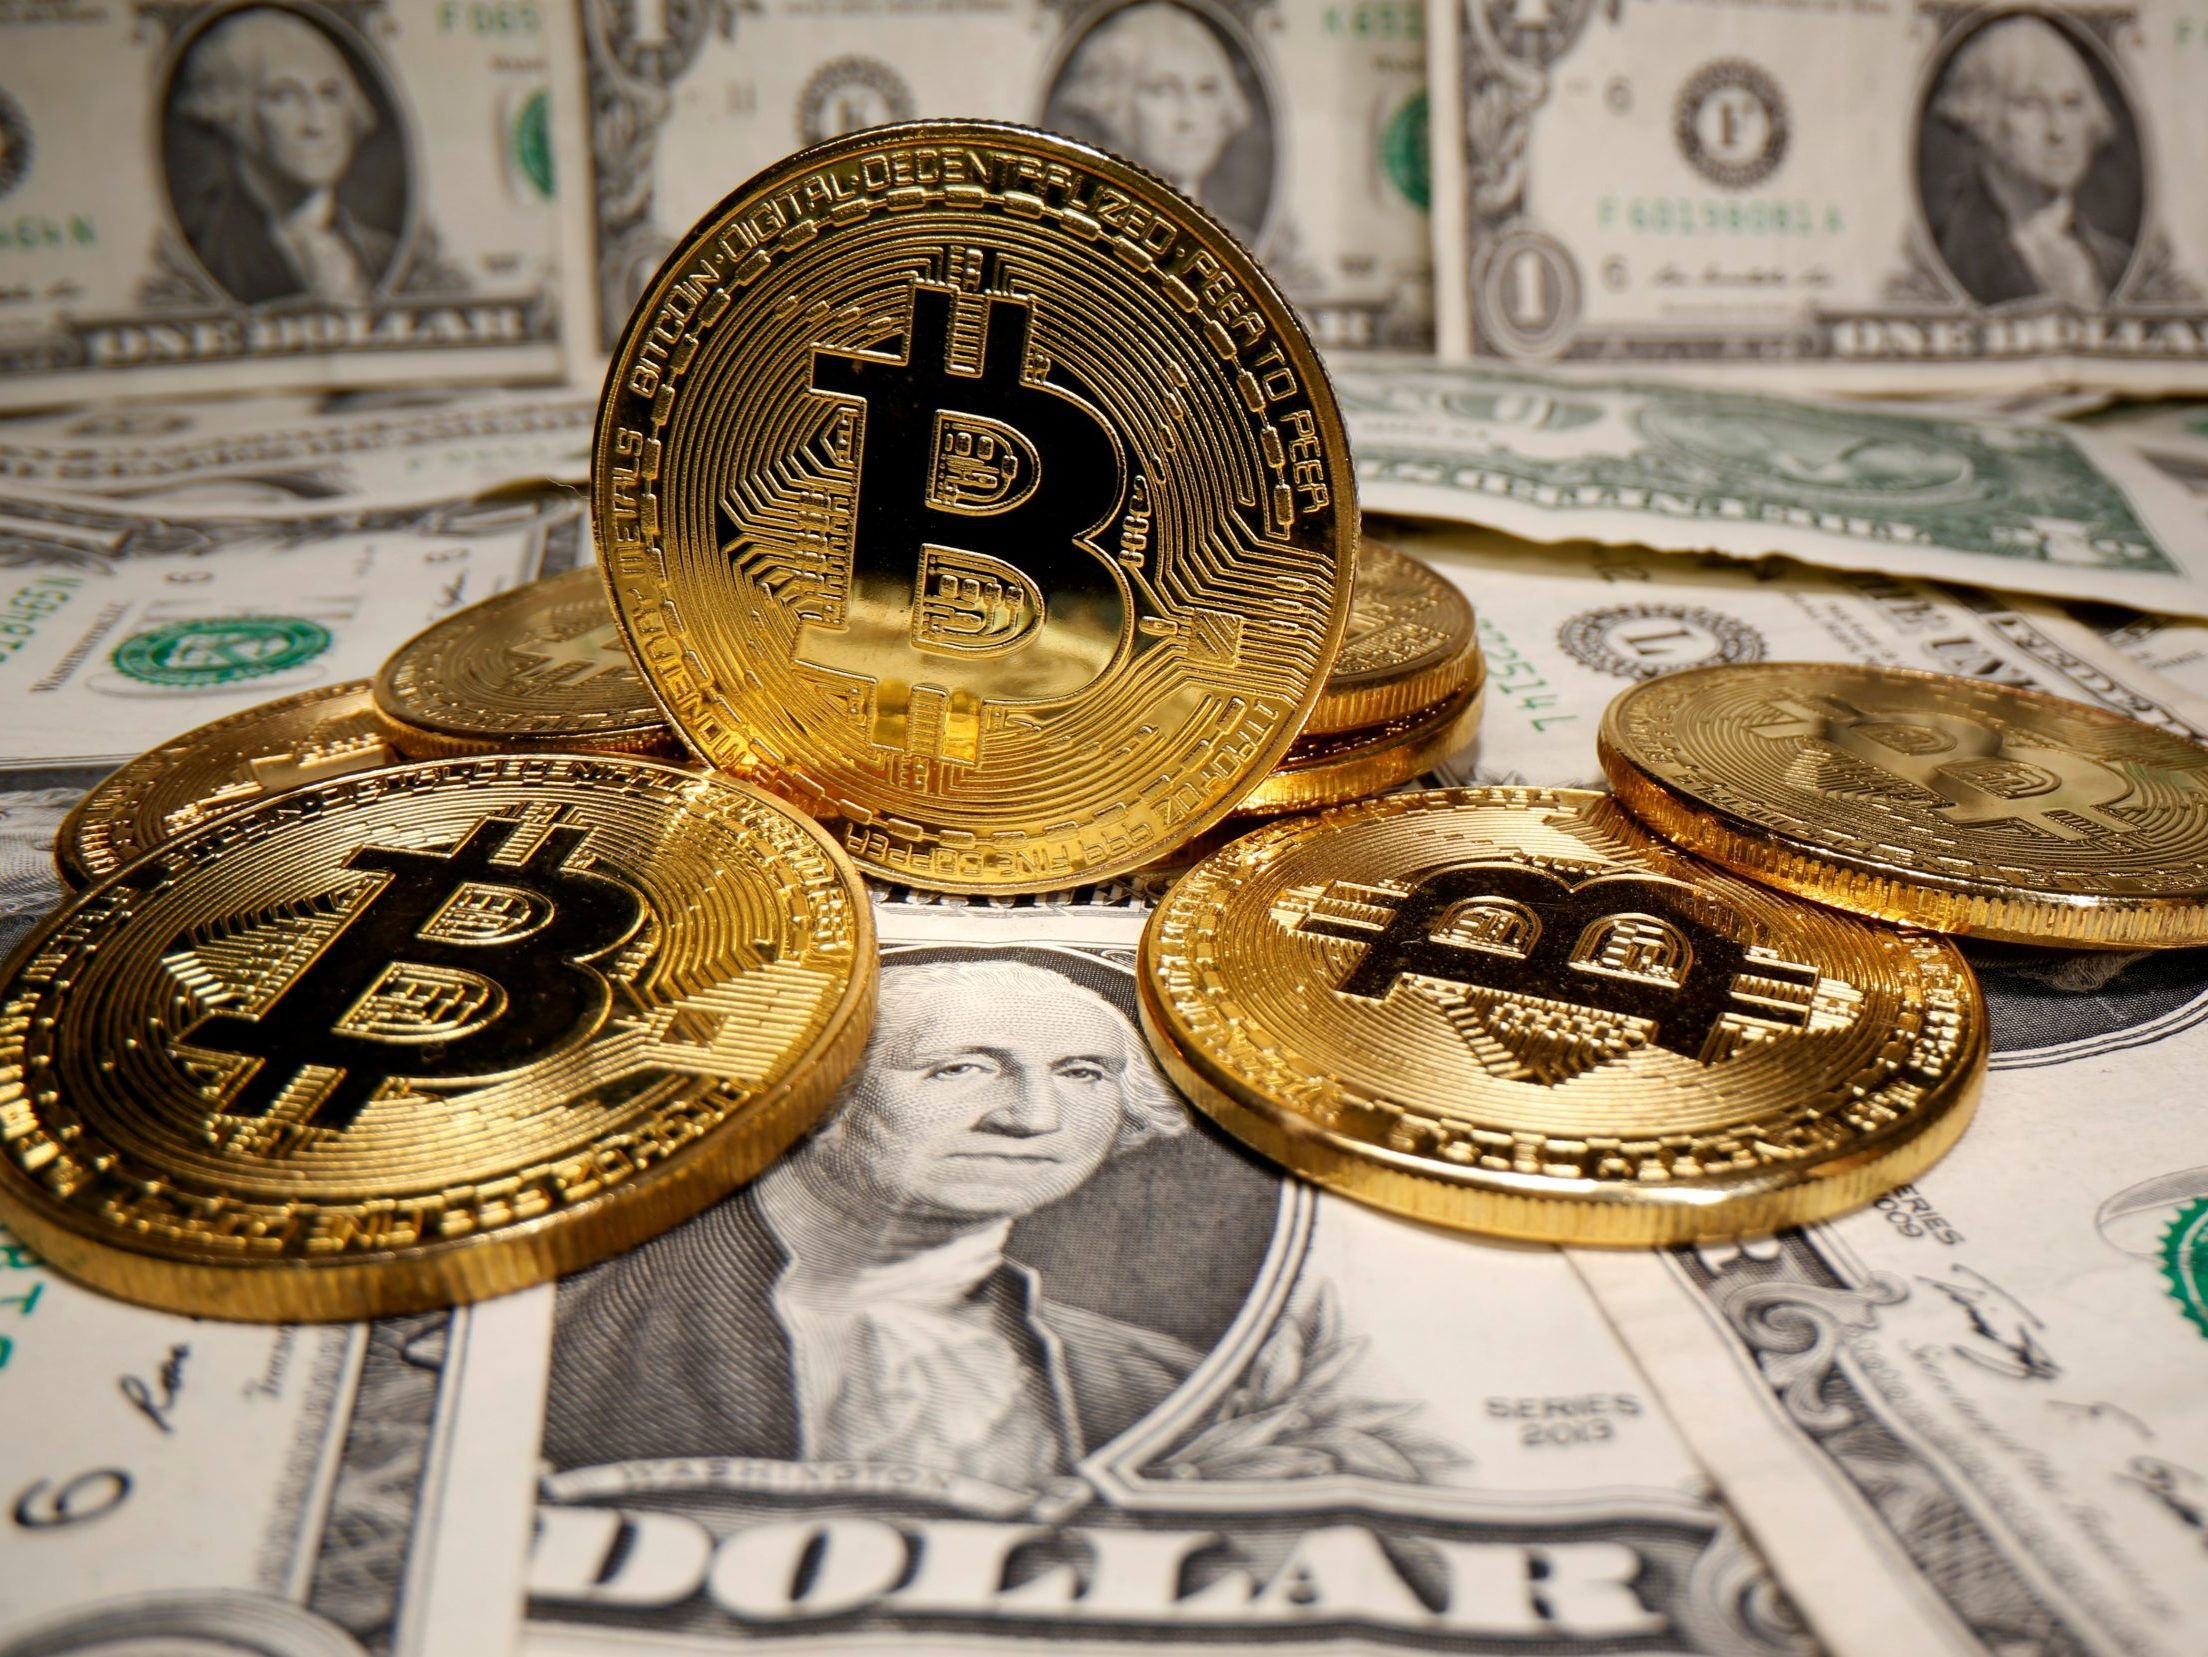 S&P Dow Jones brings bitcoin, ethereum to Wall St. with cryptocurrency indexes